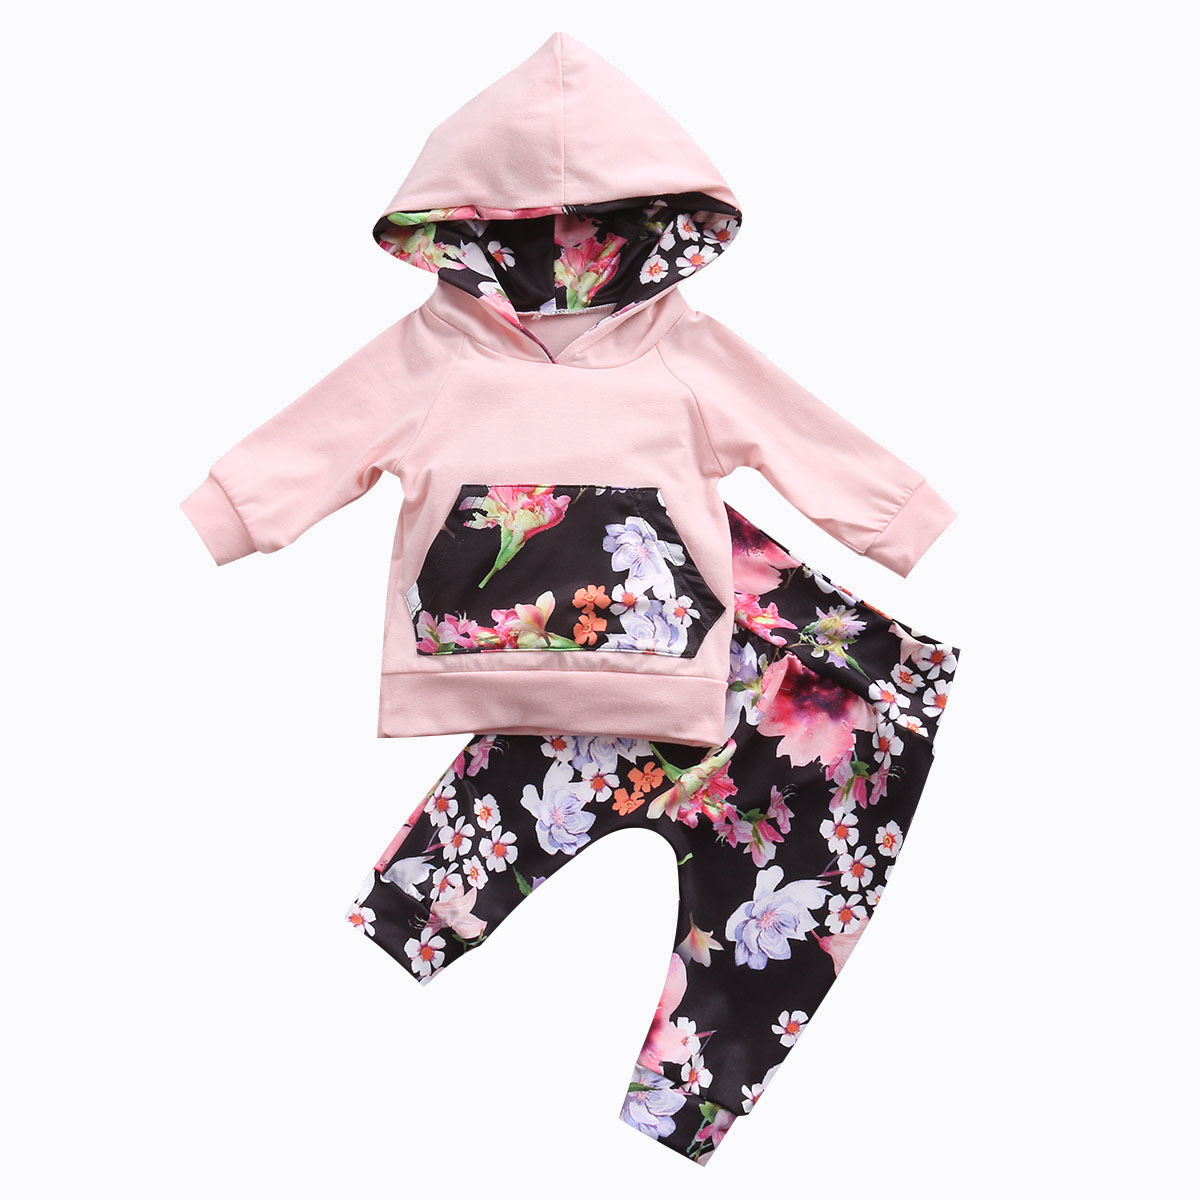 Baby Girl Hooded Tops T-shirt Floral Pants Outfit Clothing Set Infant Newborn Baby Girls Clothes Sets girls tops cute pants outfit clothes newborn kids baby girl clothing sets summer off shoulder striped short sleeve 1 6t